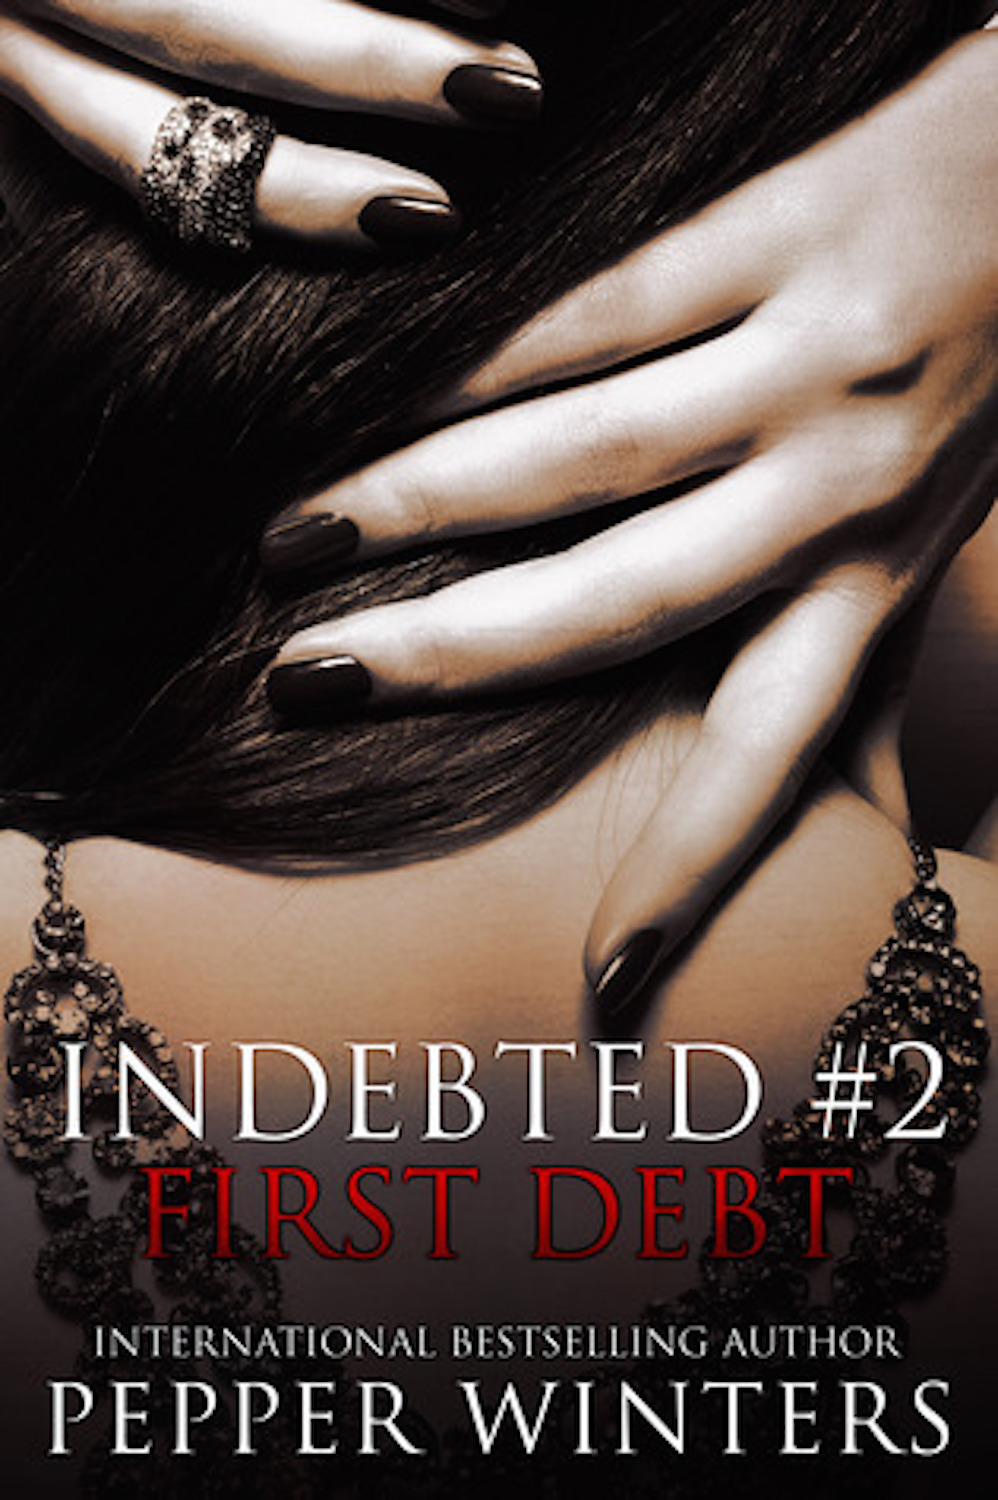 * FIRST DEBT (Indebted #2) by Pepper Winters * Blog Tour * Book Review * Giveaway *